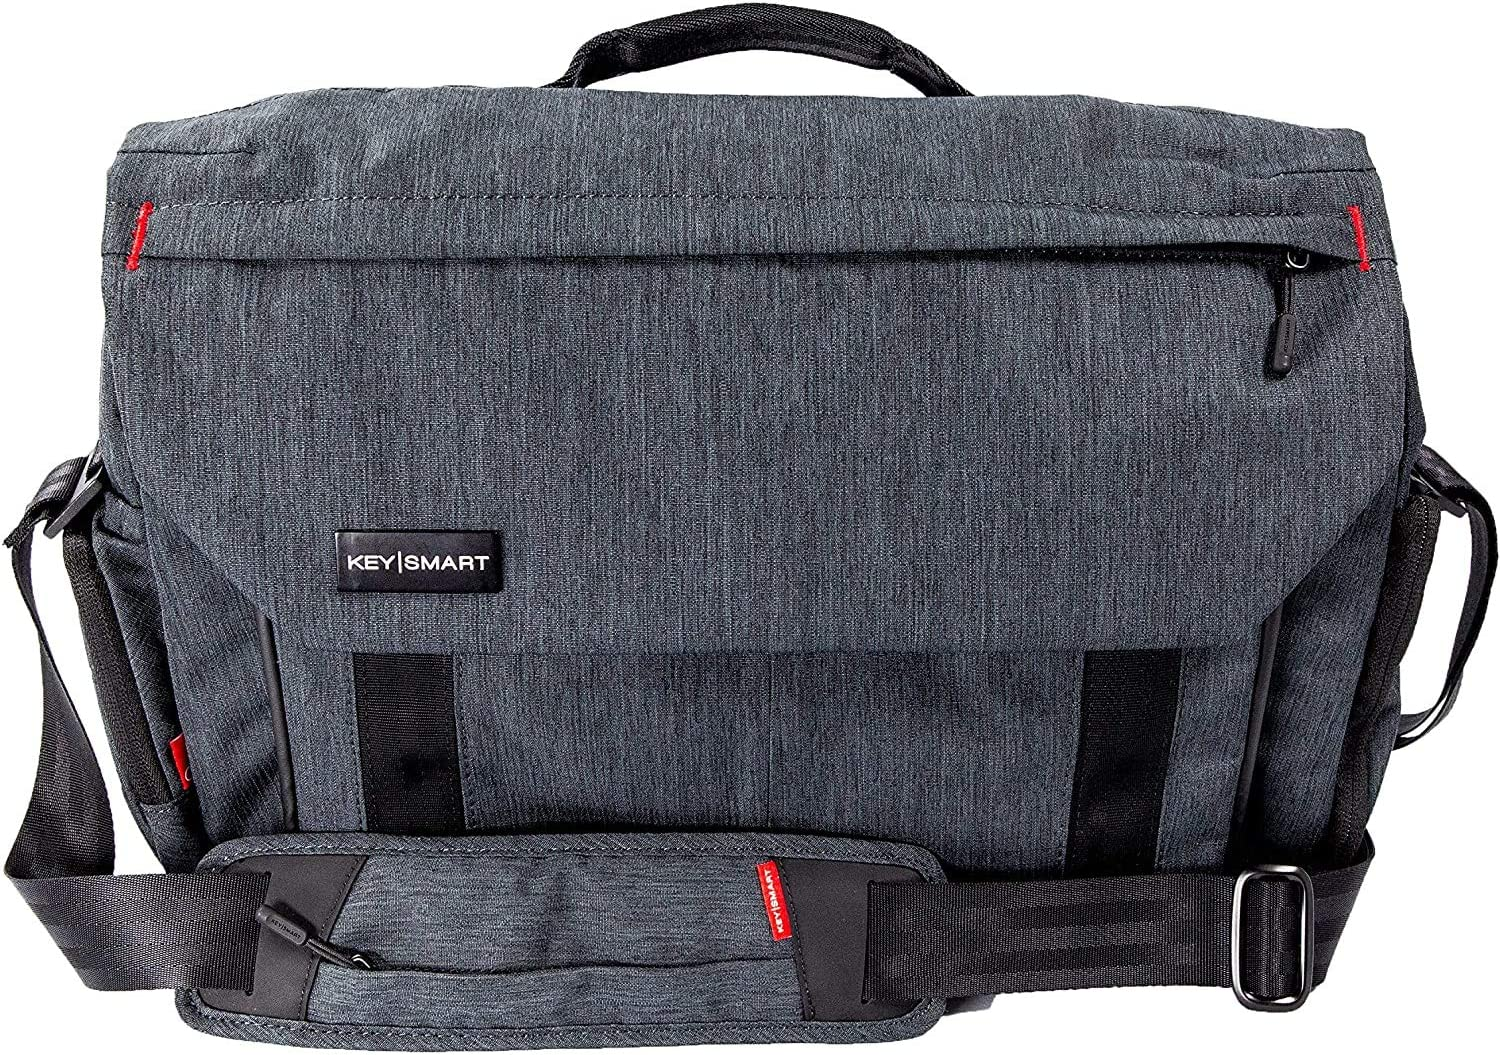 KeySmart Urban Hybrid Convertible Laptop Messenger Bag, Shoulder Bag, Backpack & Briefcase